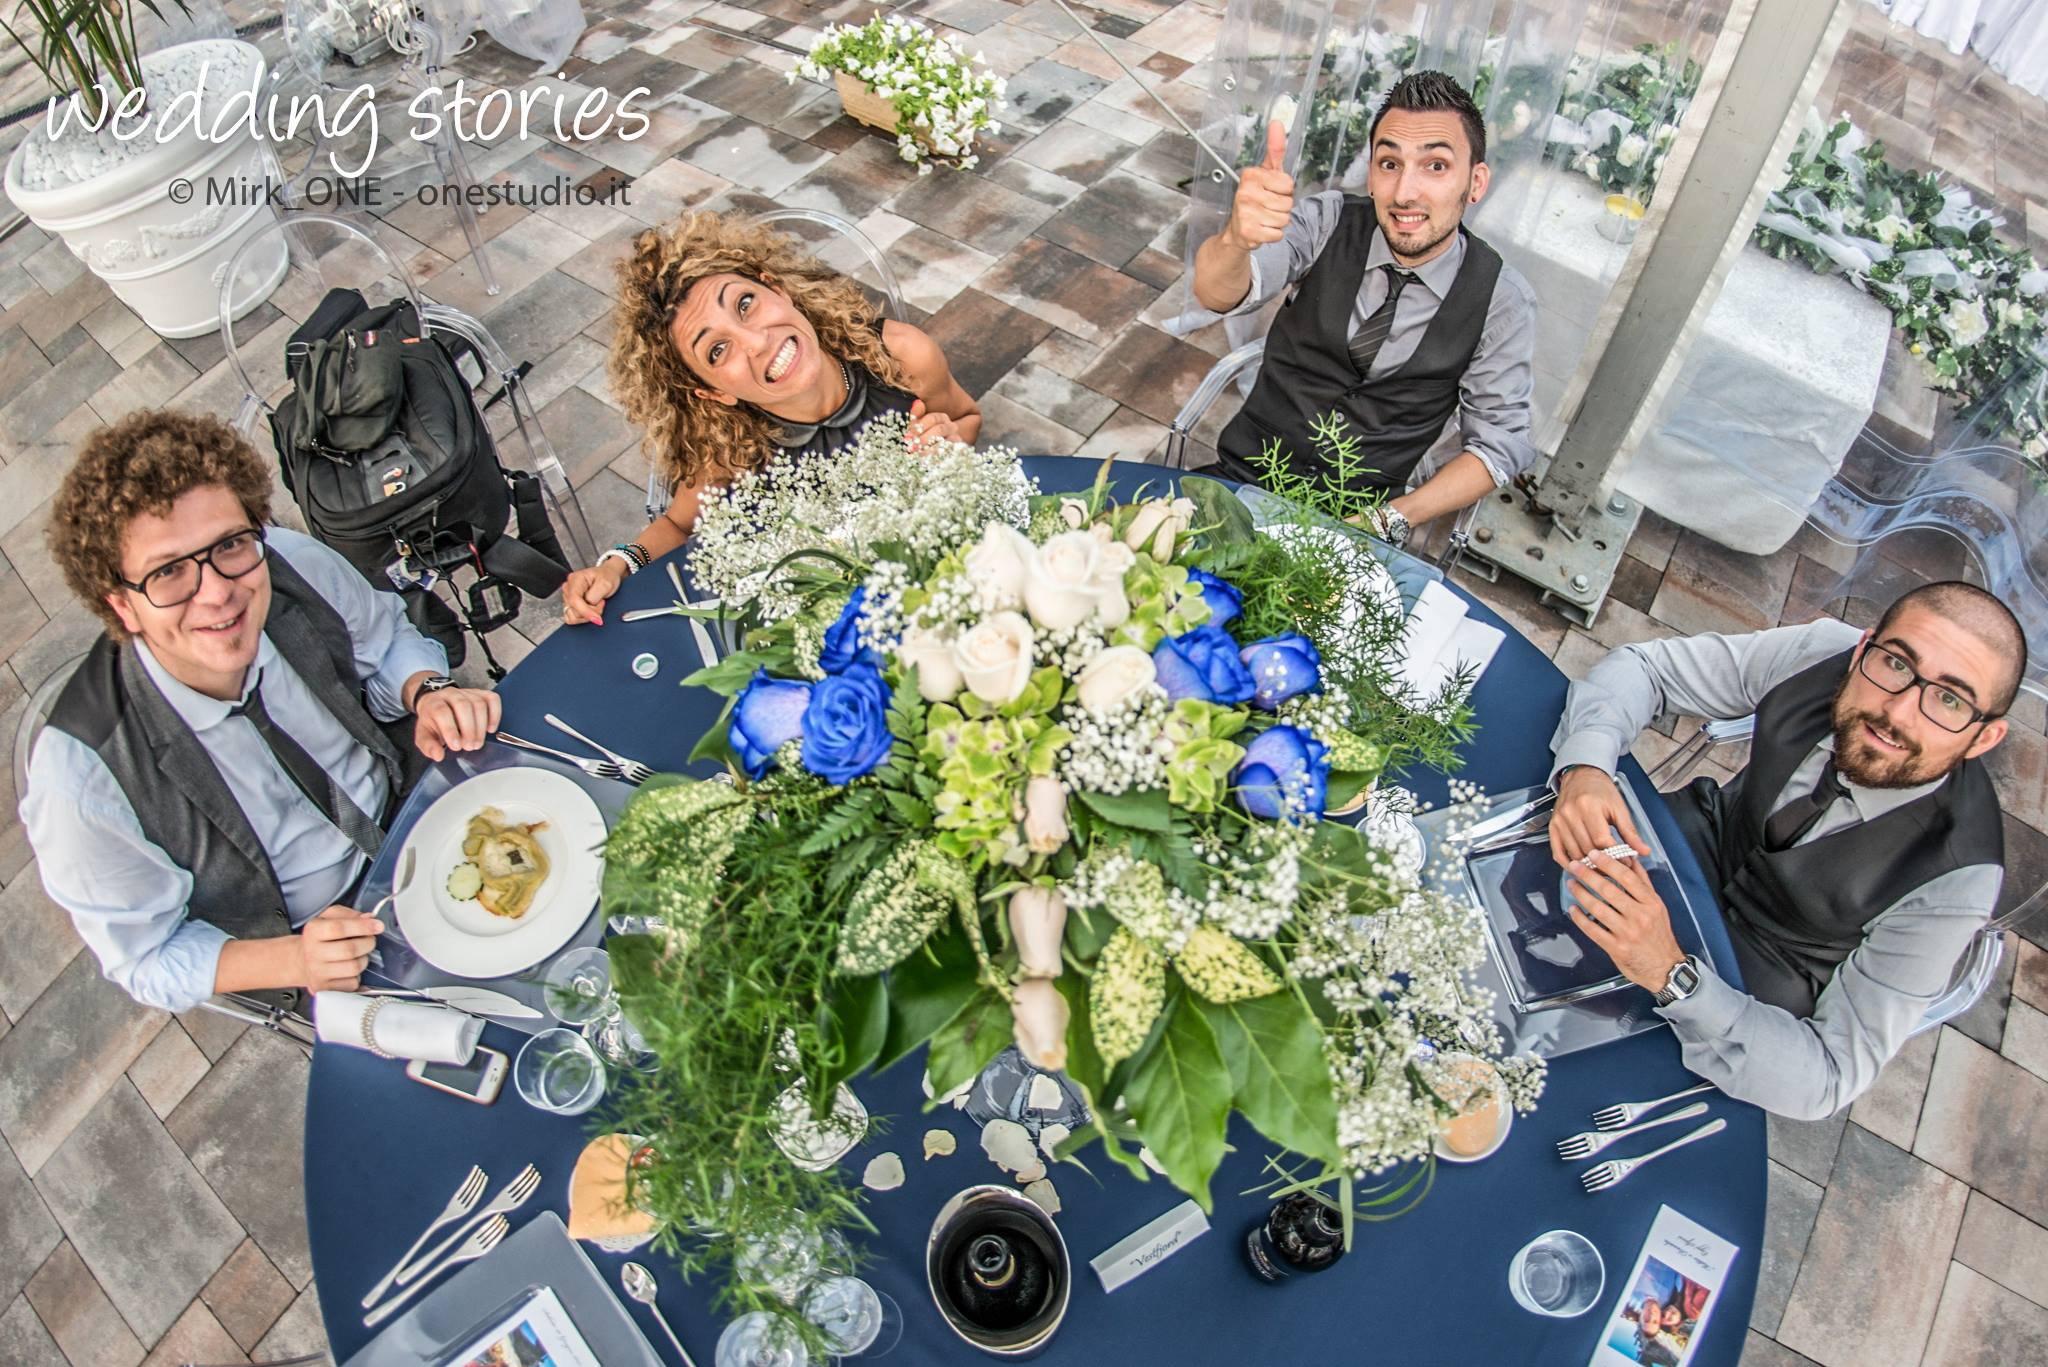 https://lnx.mirkone.it/wp-content/uploads/2018/03/mirk_ONE-fotografo-matrimonio-00891.jpg